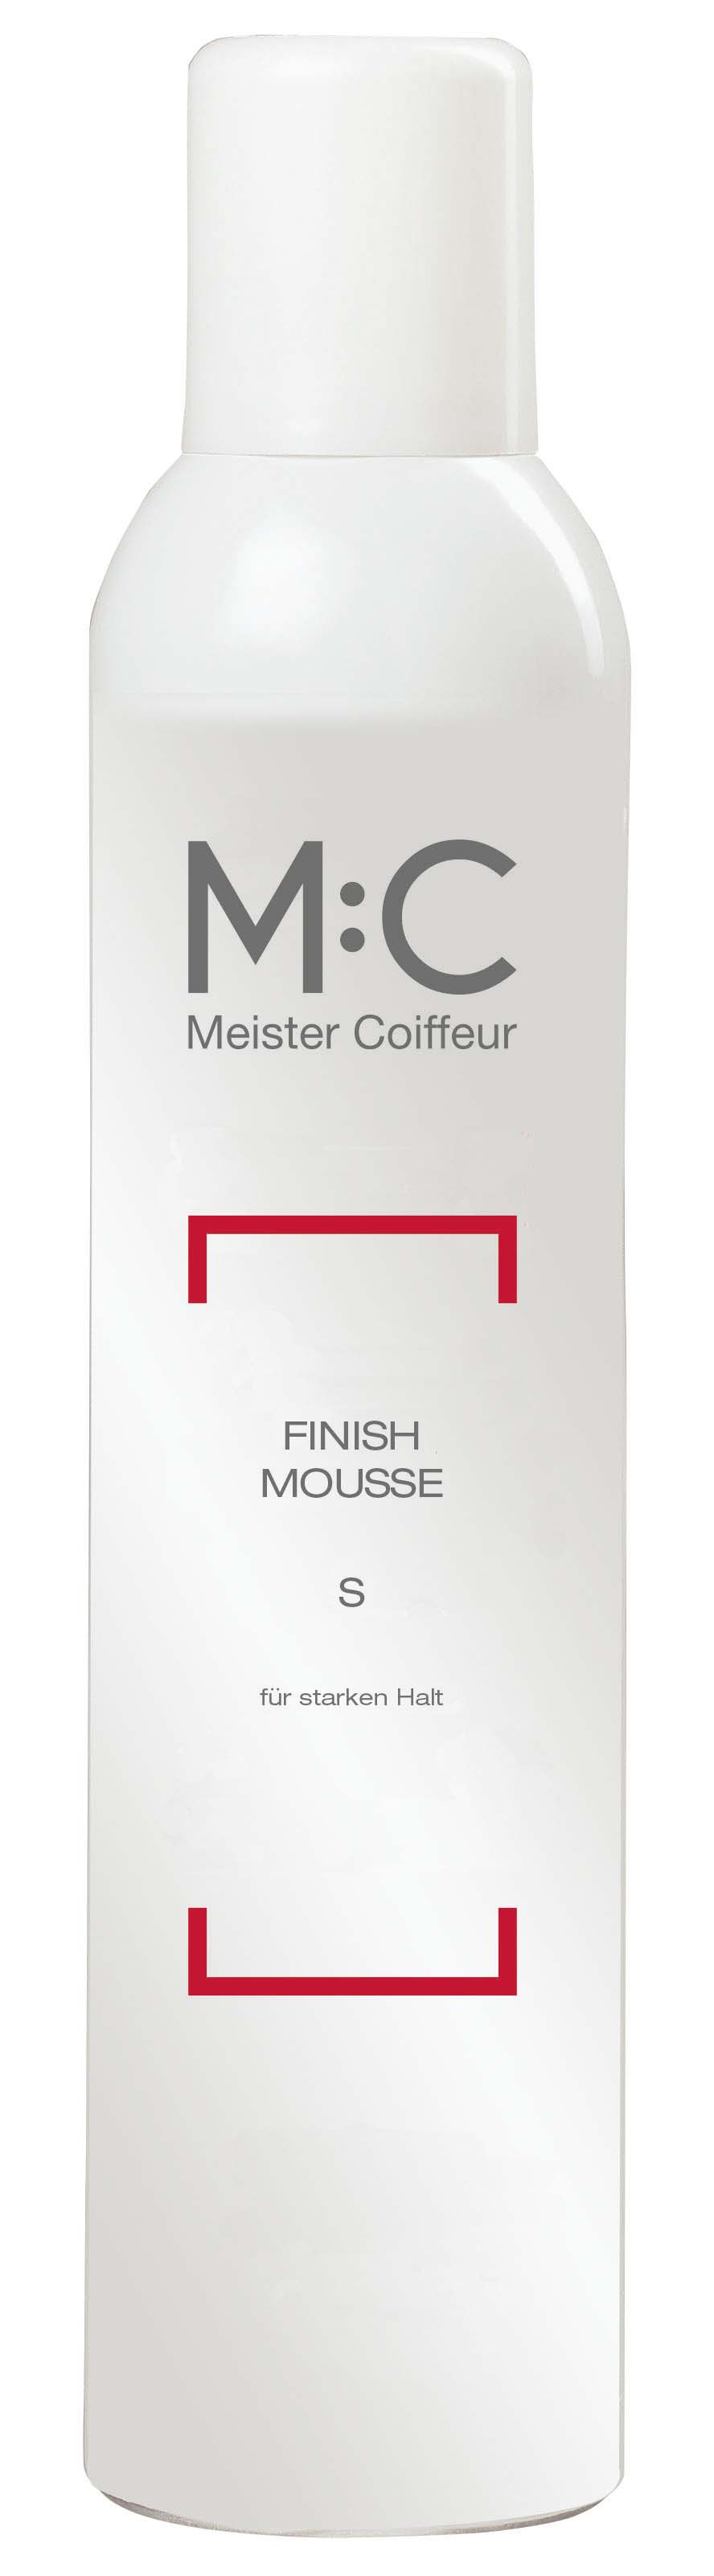 M:C Finish Mousse S